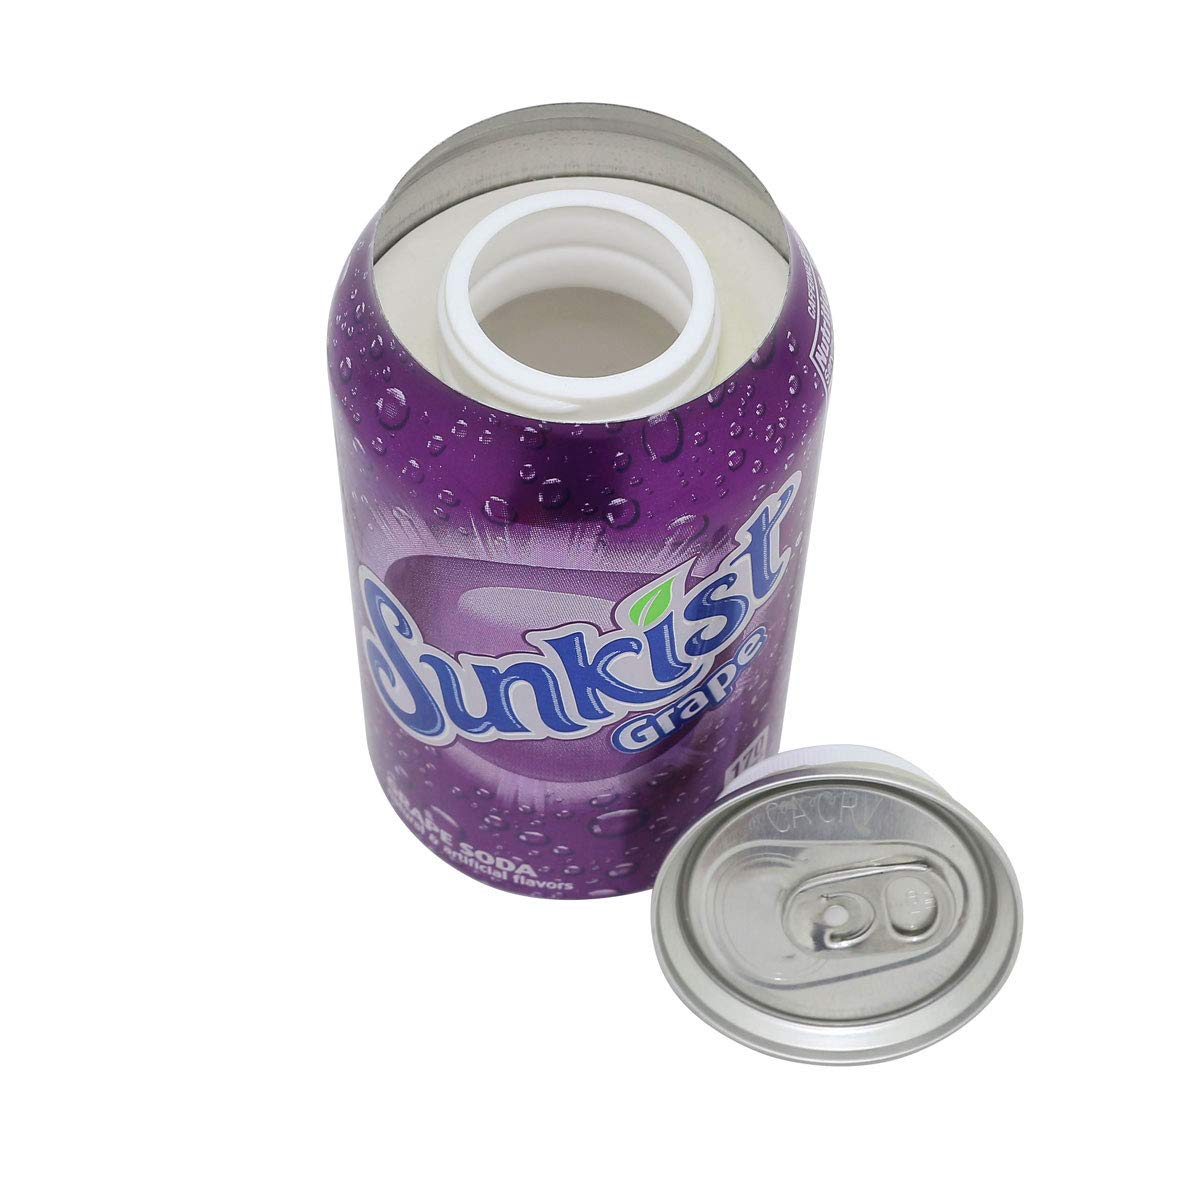 LYTIO Diversion Soda Can Lookalike Safe Stash: Hide Your Valuables in Plain Sight (Sunkist Grape)